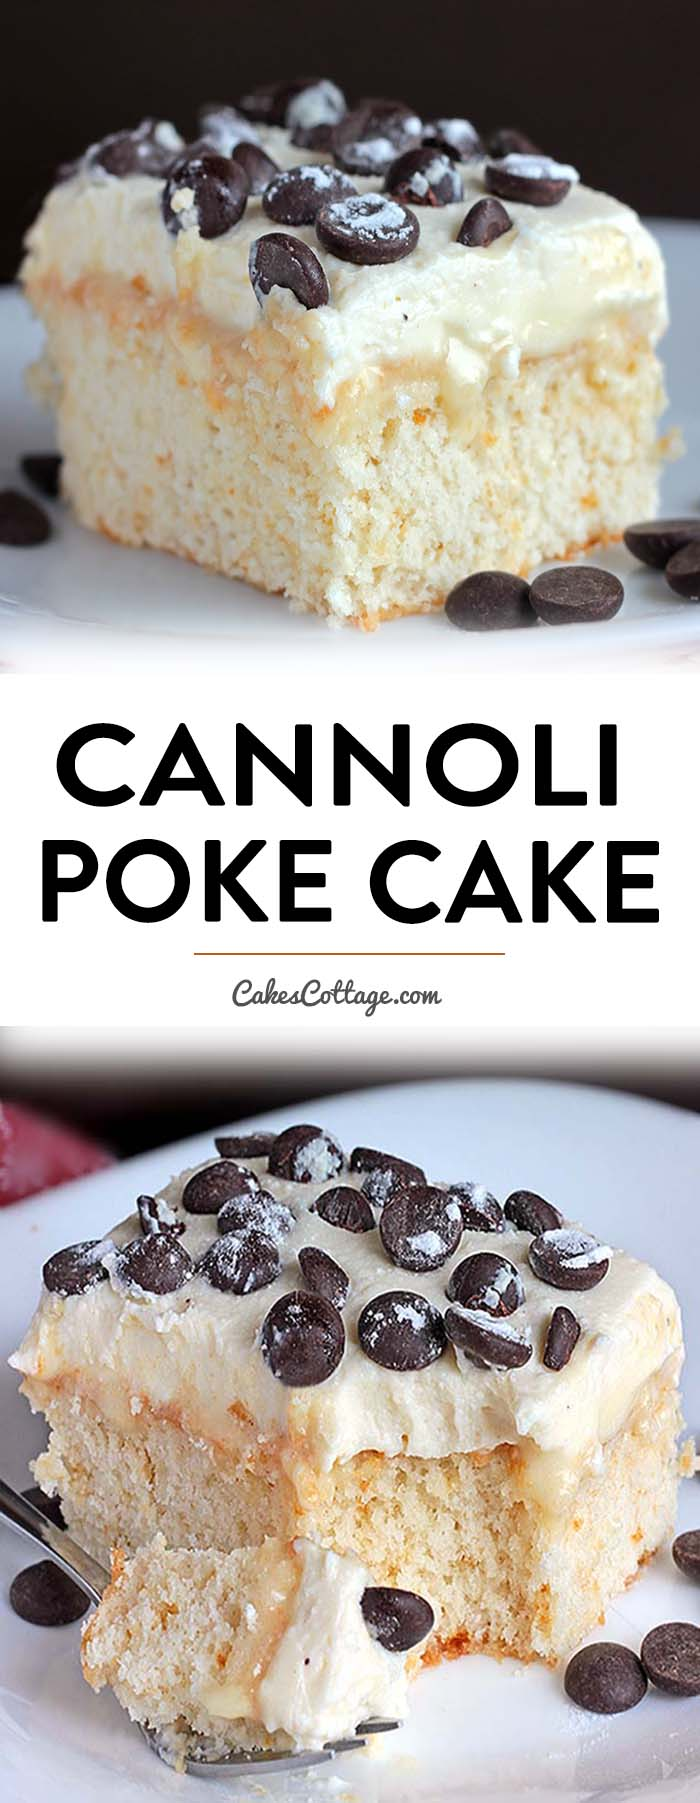 Poke Cake topped with an Ah-Mazing cannoli filling. #pokecake #cannoli